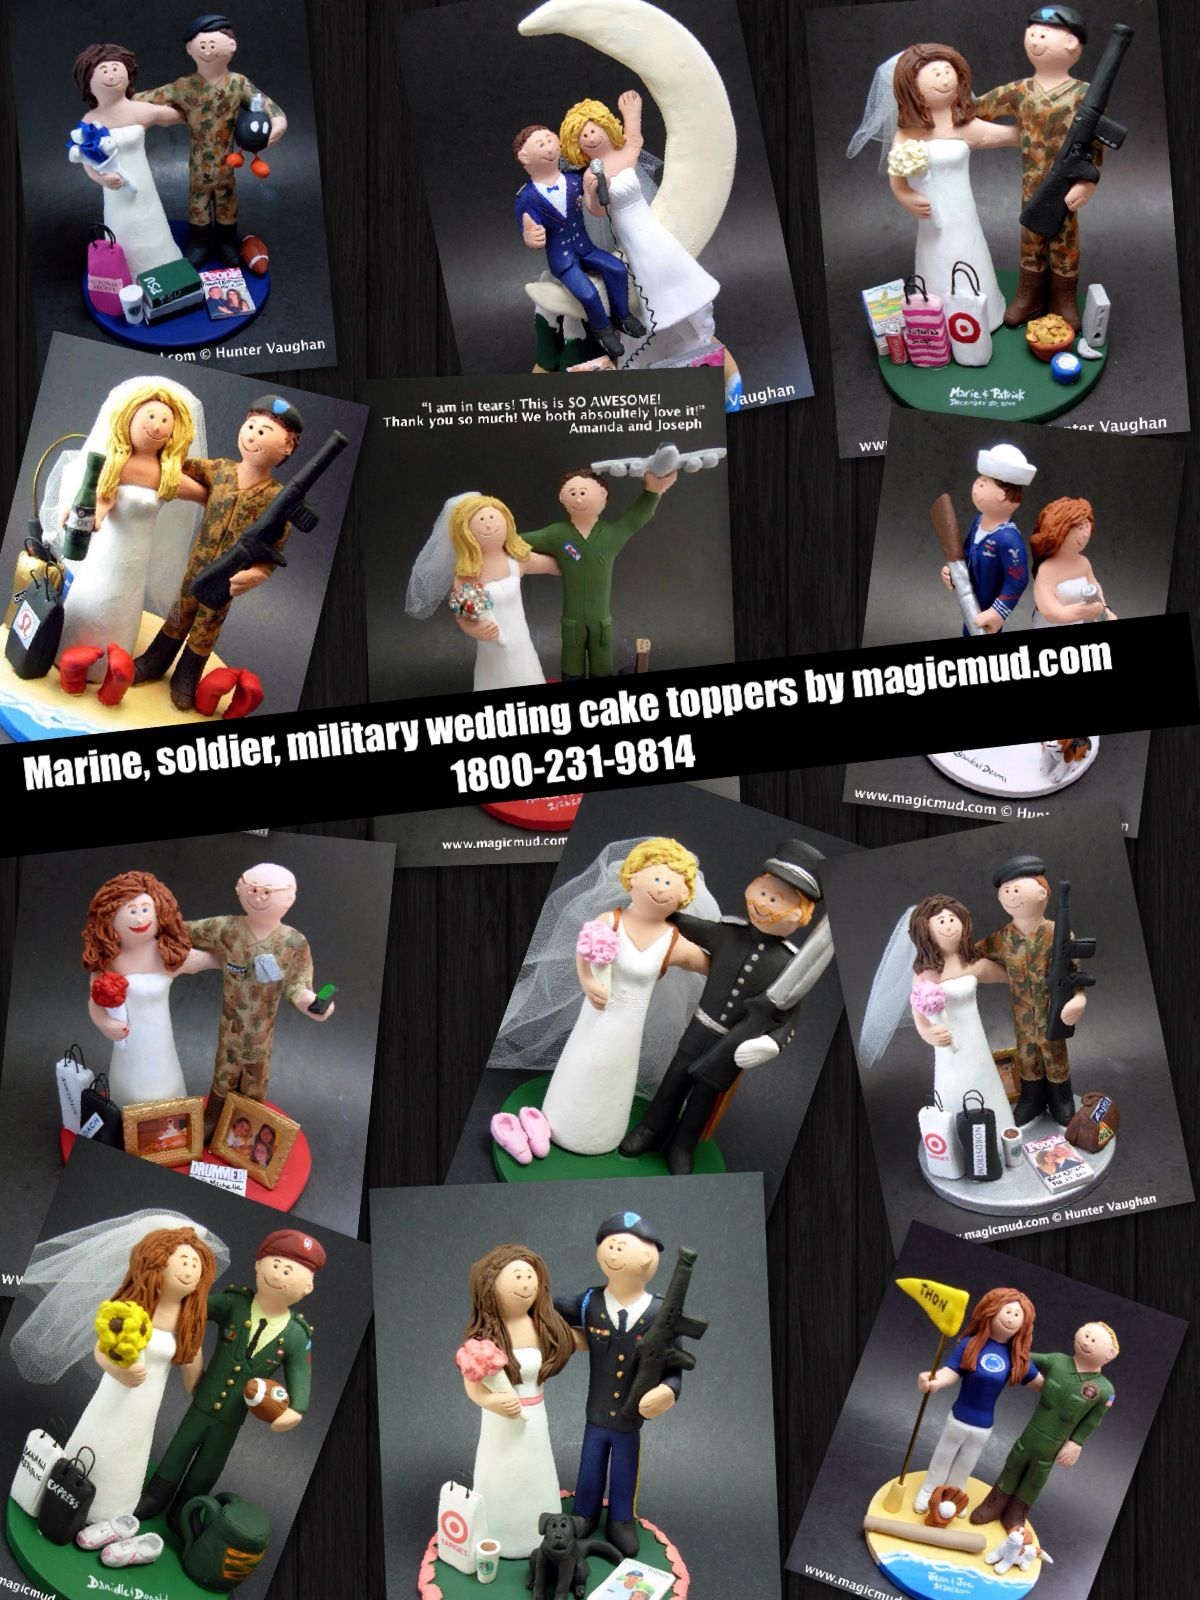 Military wedding cake toppers by gicmud